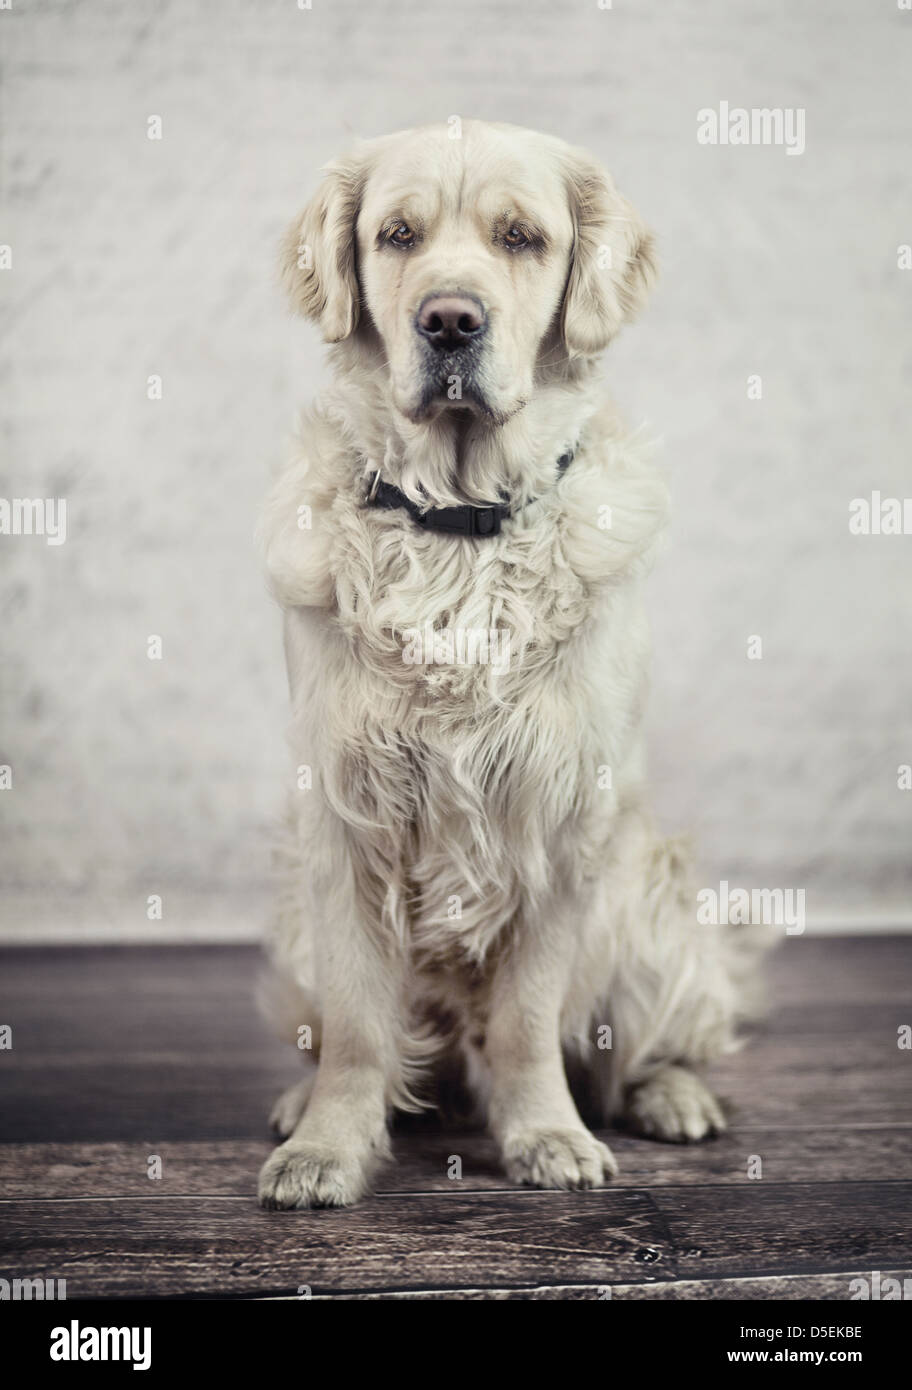 Obedient and calm dog waiting for its master - Stock Image